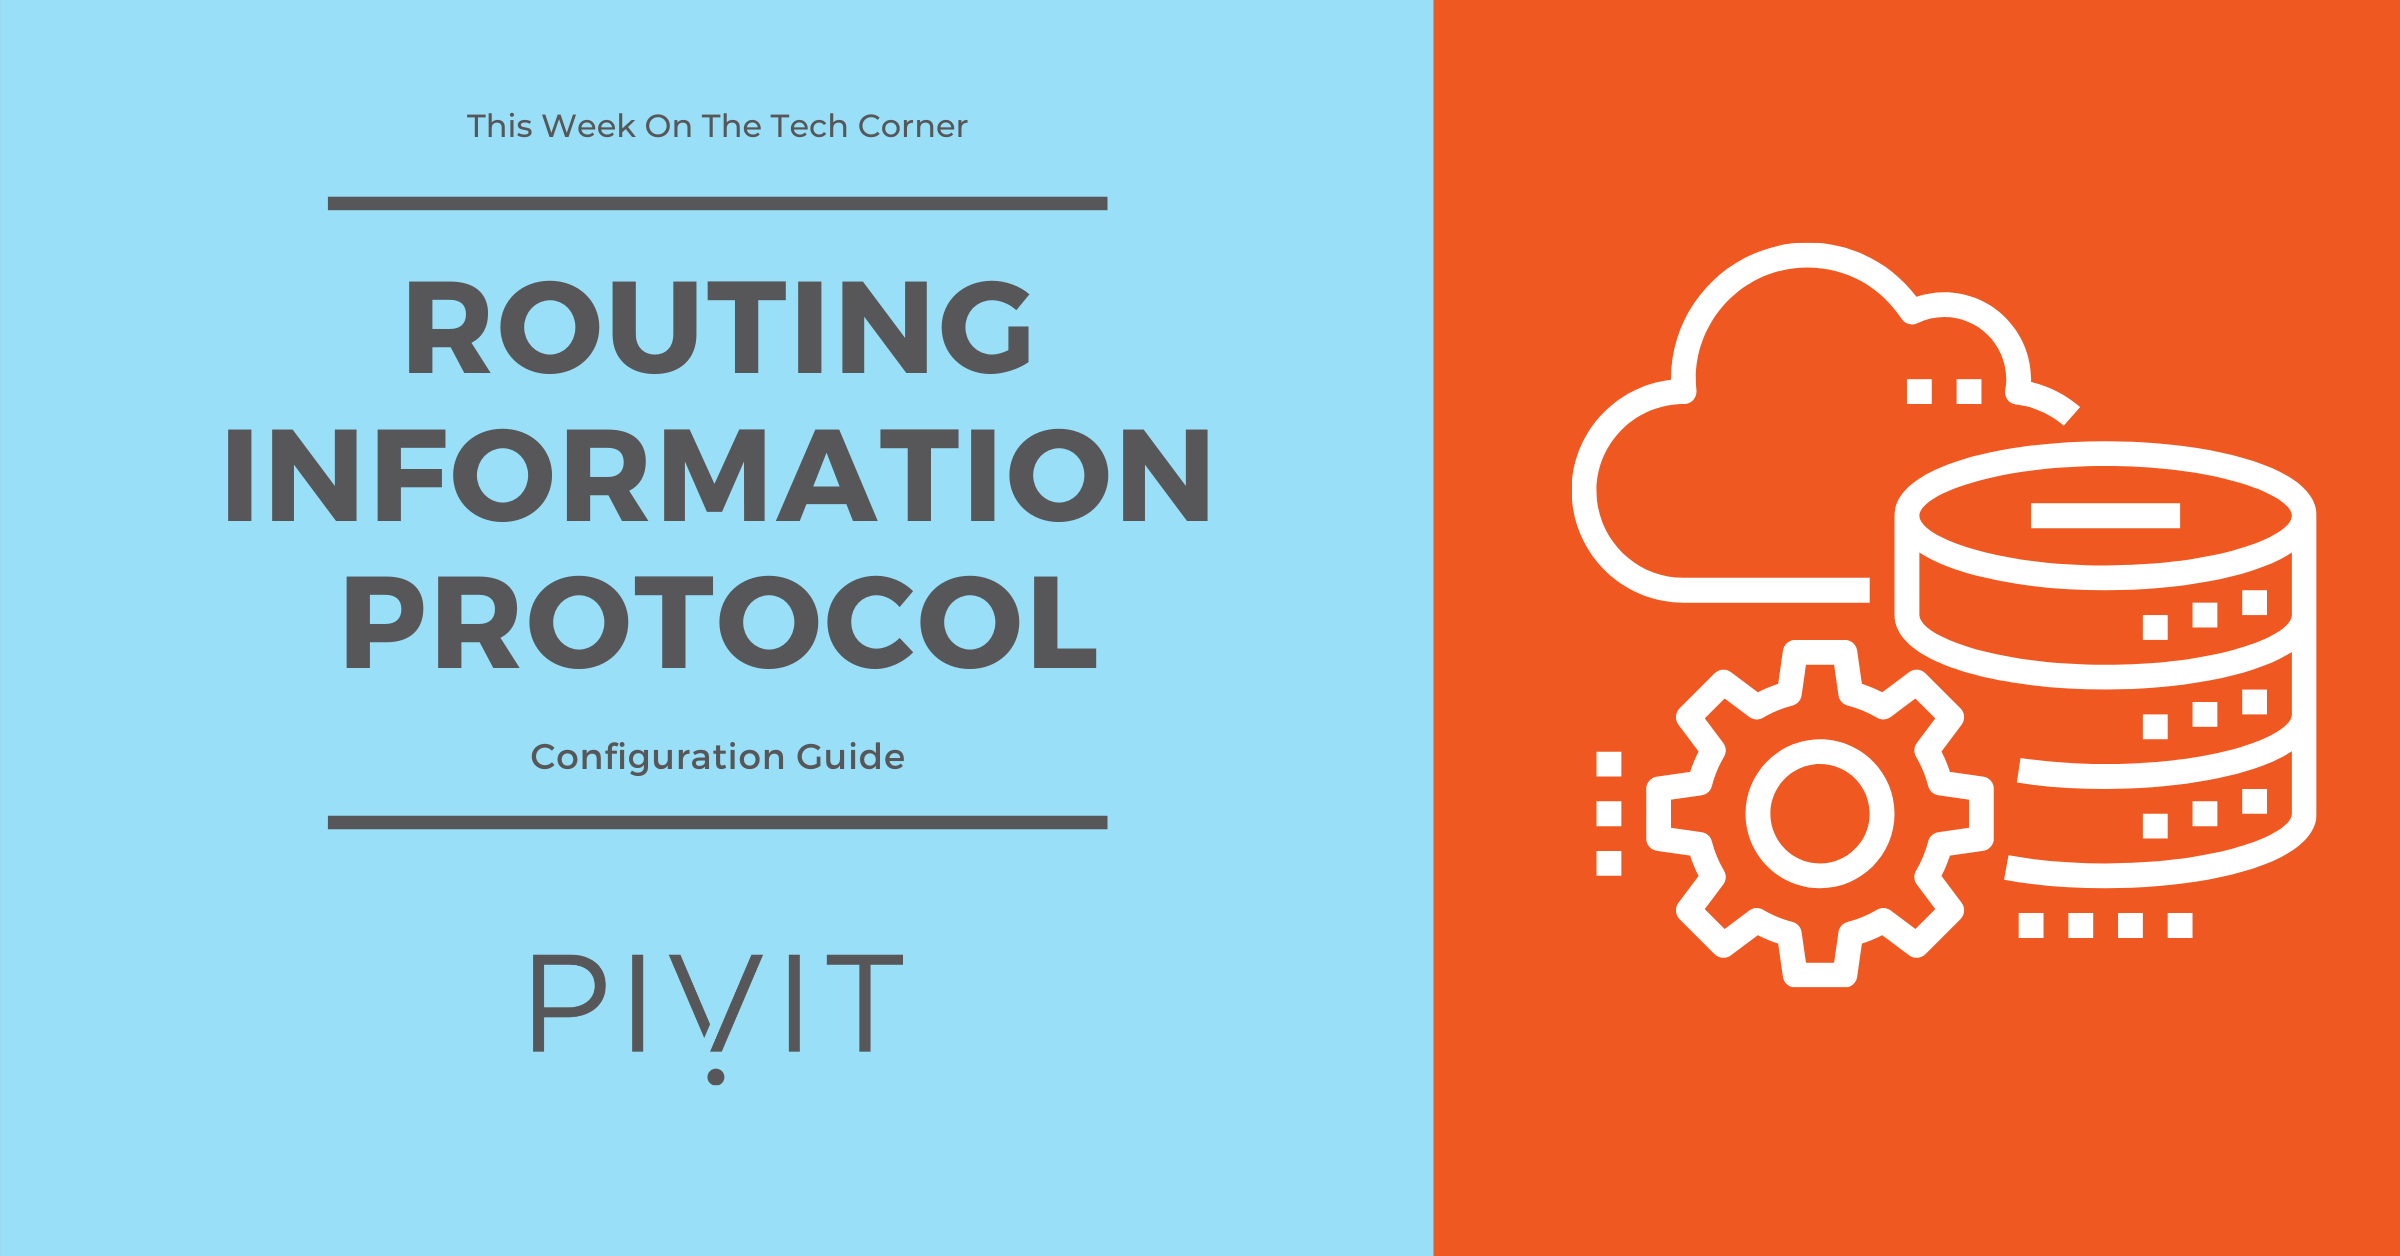 Configure and Route Efficiently with the Routing Information Protocol